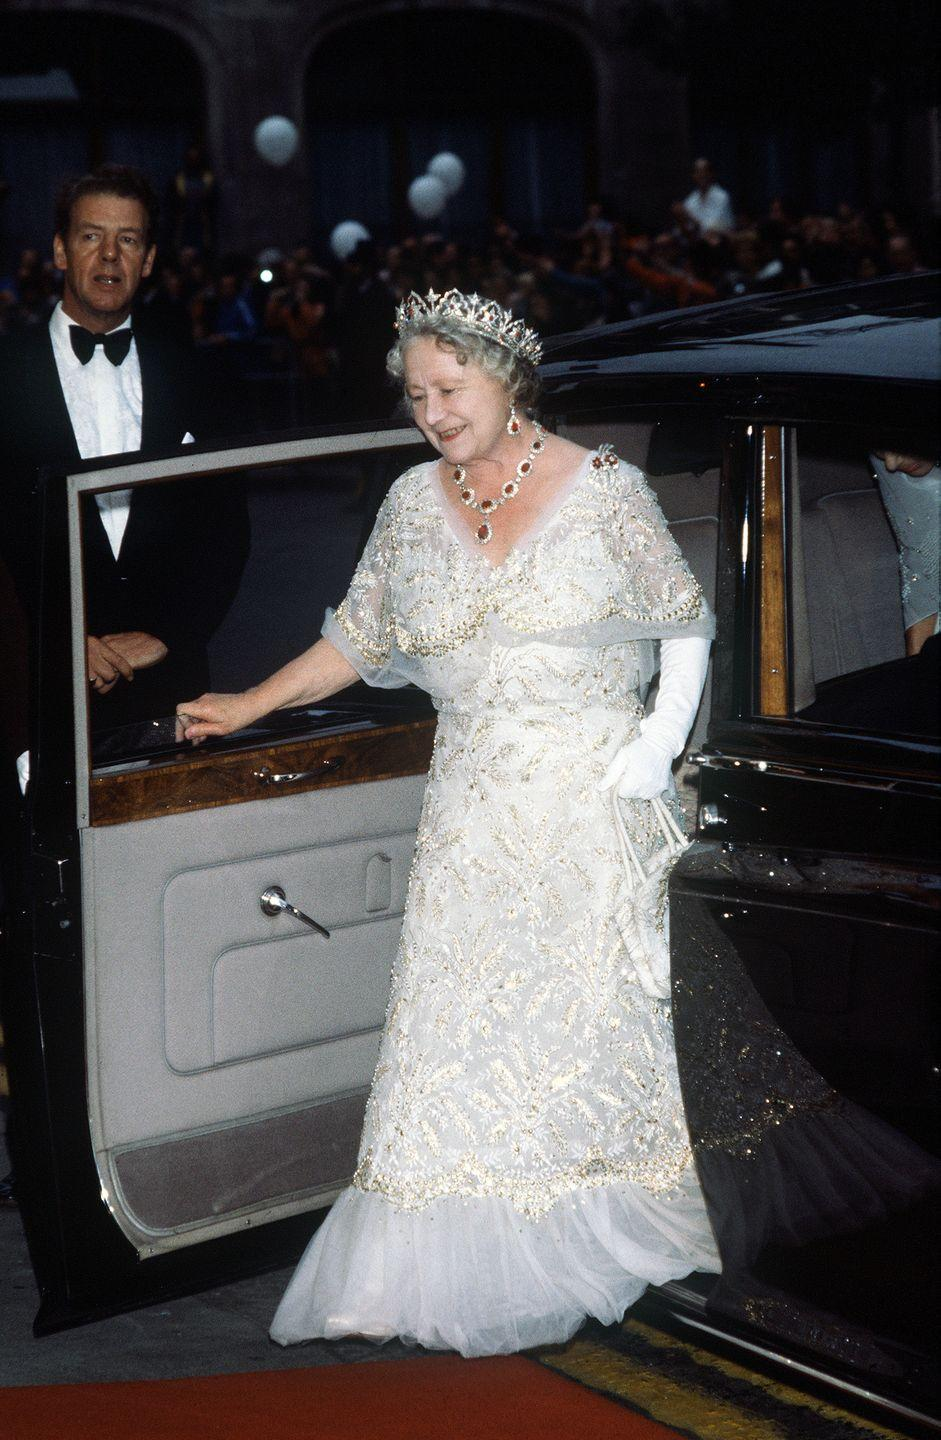 <p>Queen Elizabeth, the Queen Mother, wore a white chiffon evening gown to her 80th birthday celebration in 1980. She paired the gown with a stunning tiara and necklace set. </p>